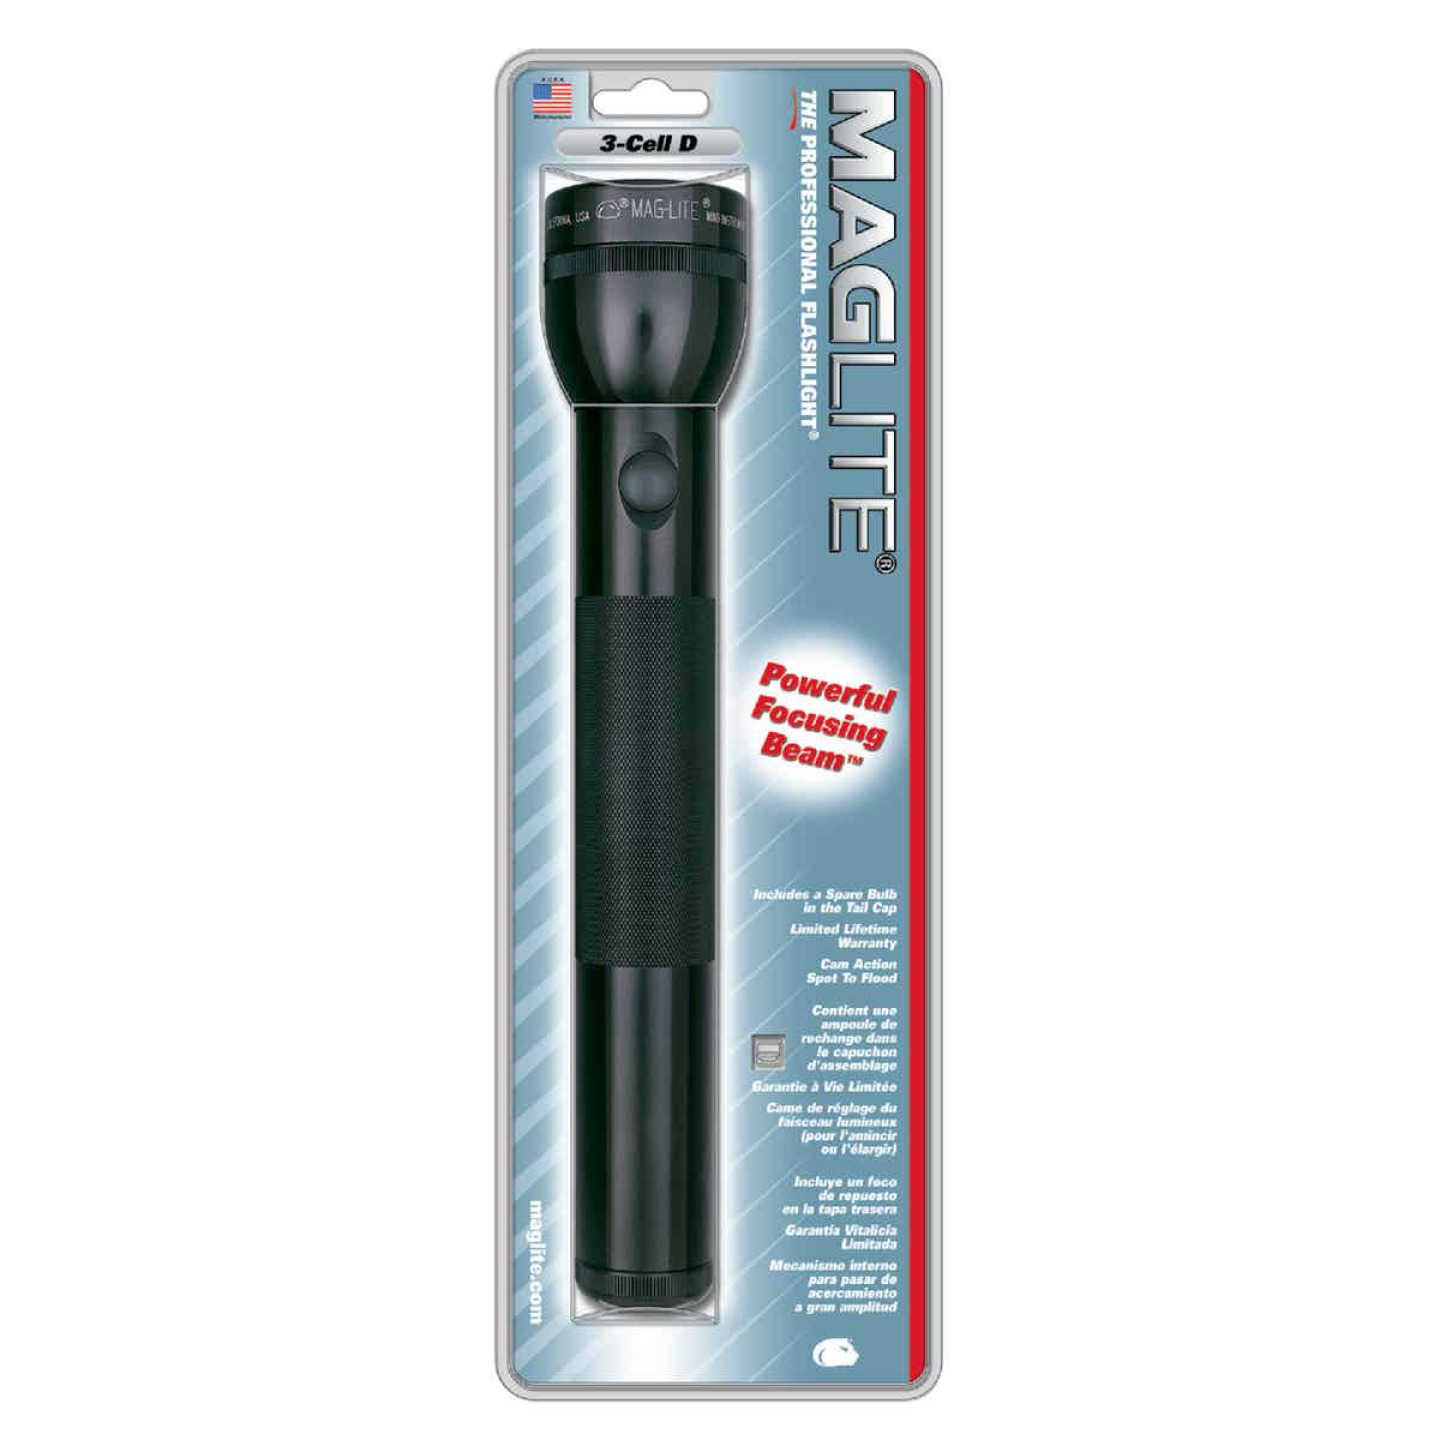 Maglite 45 Lm. Xenon 3D Flashlight, Black Image 2